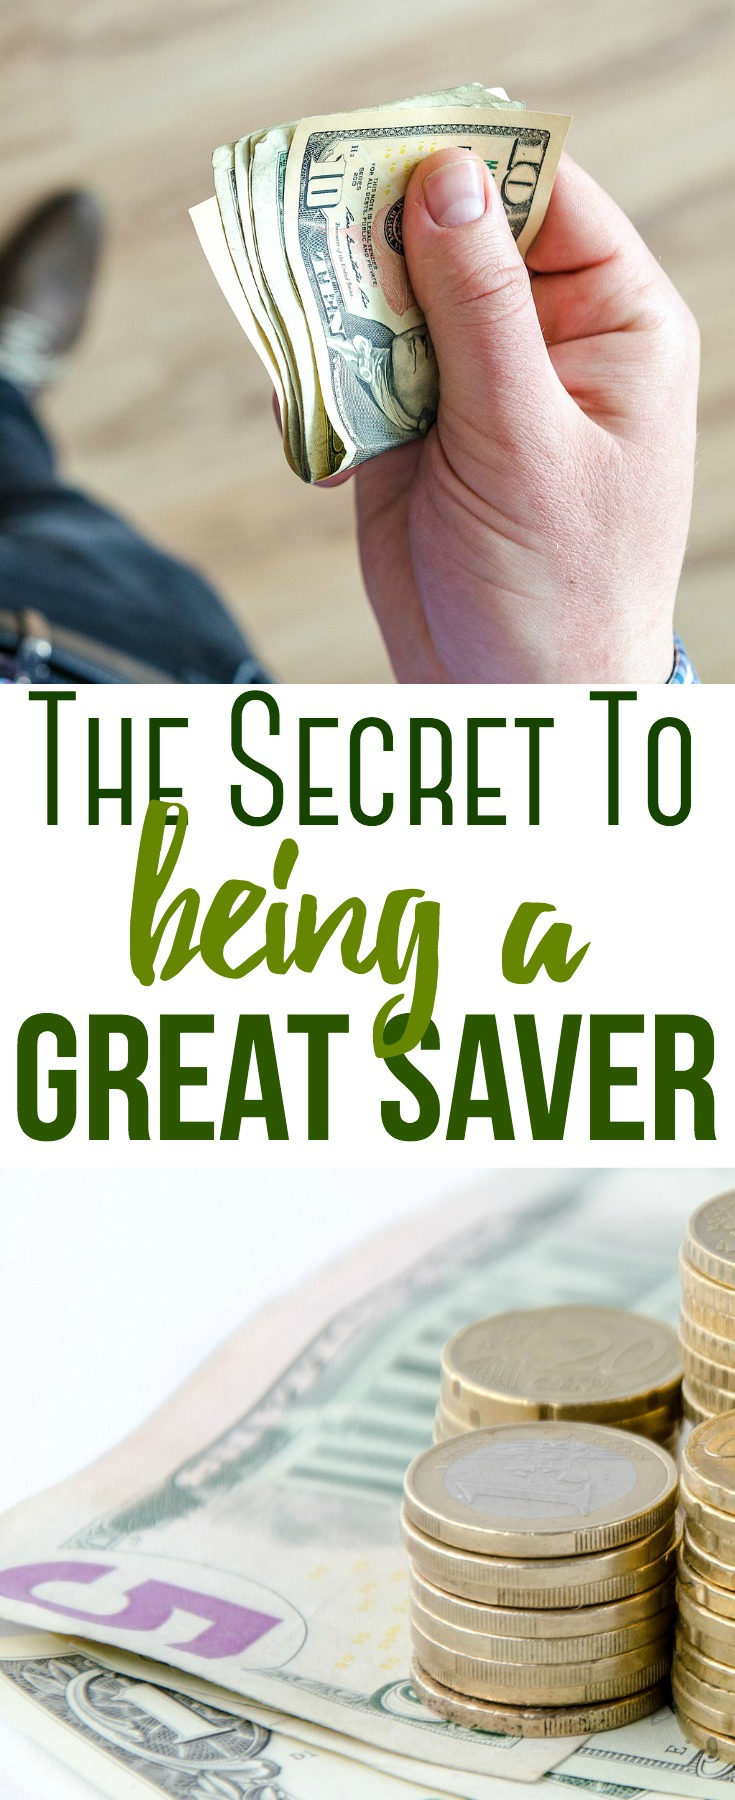 Everyone is looking for an easy solution to help them save. Stop the cycle of living paycheck to paycheck with this simple secret to being a great saver.